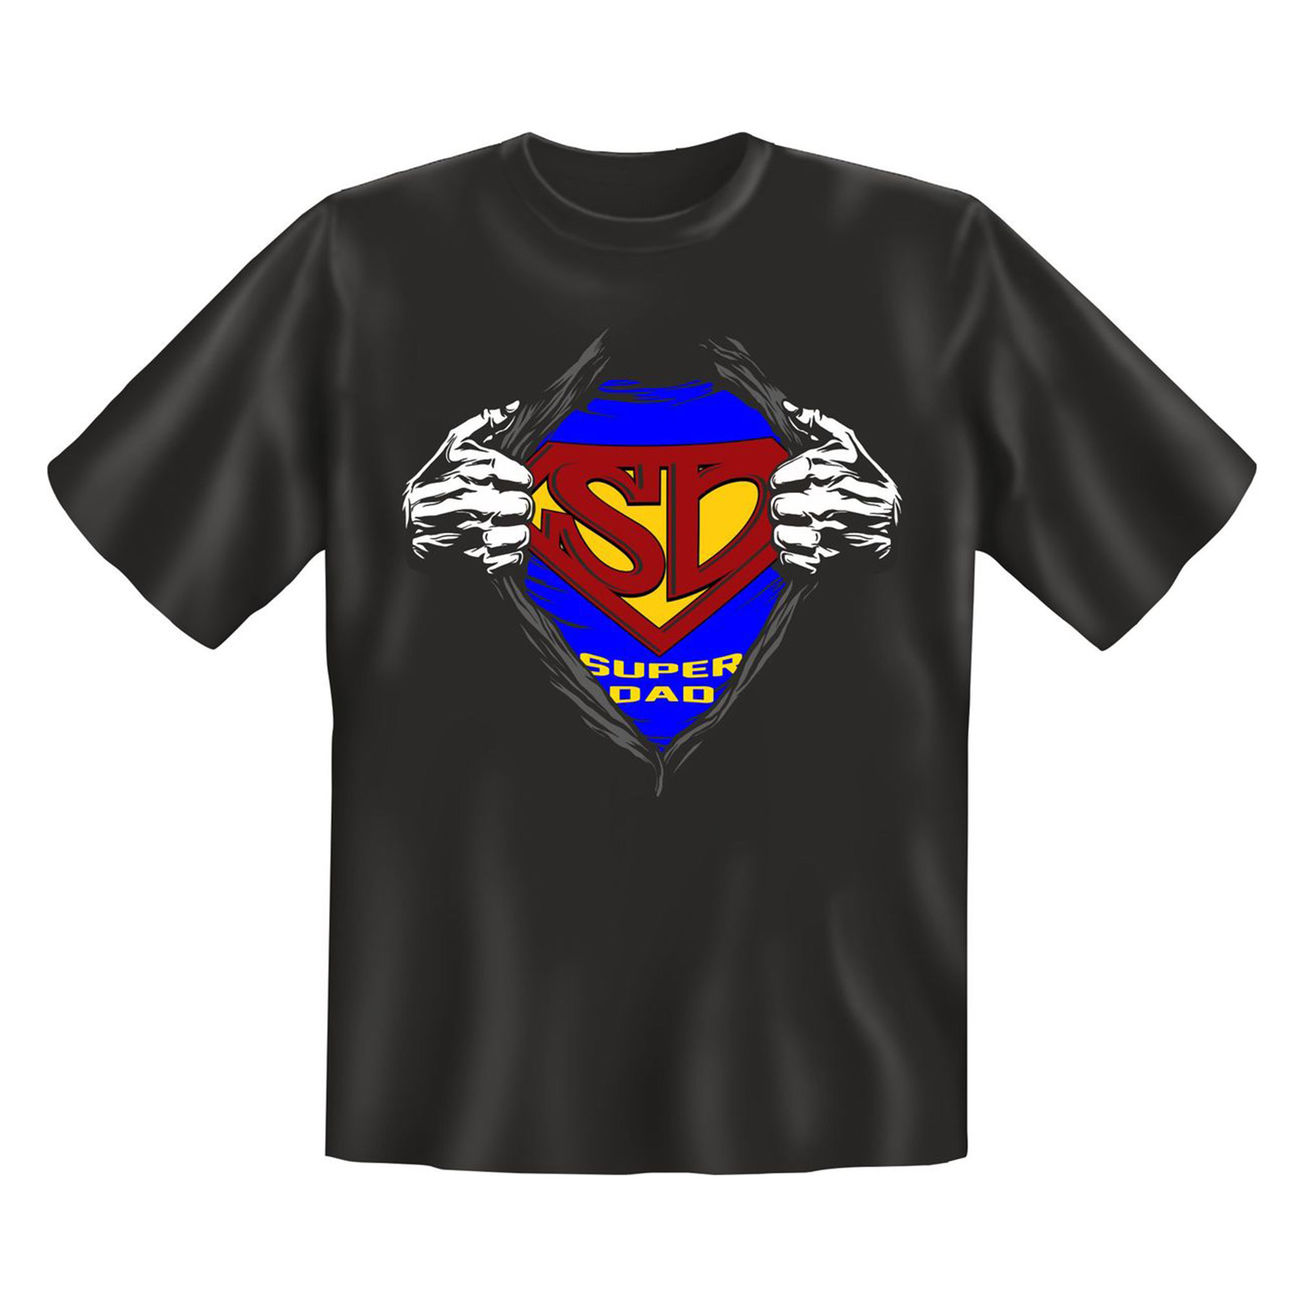 Rahmenlos T-Shirt Super Dad 0